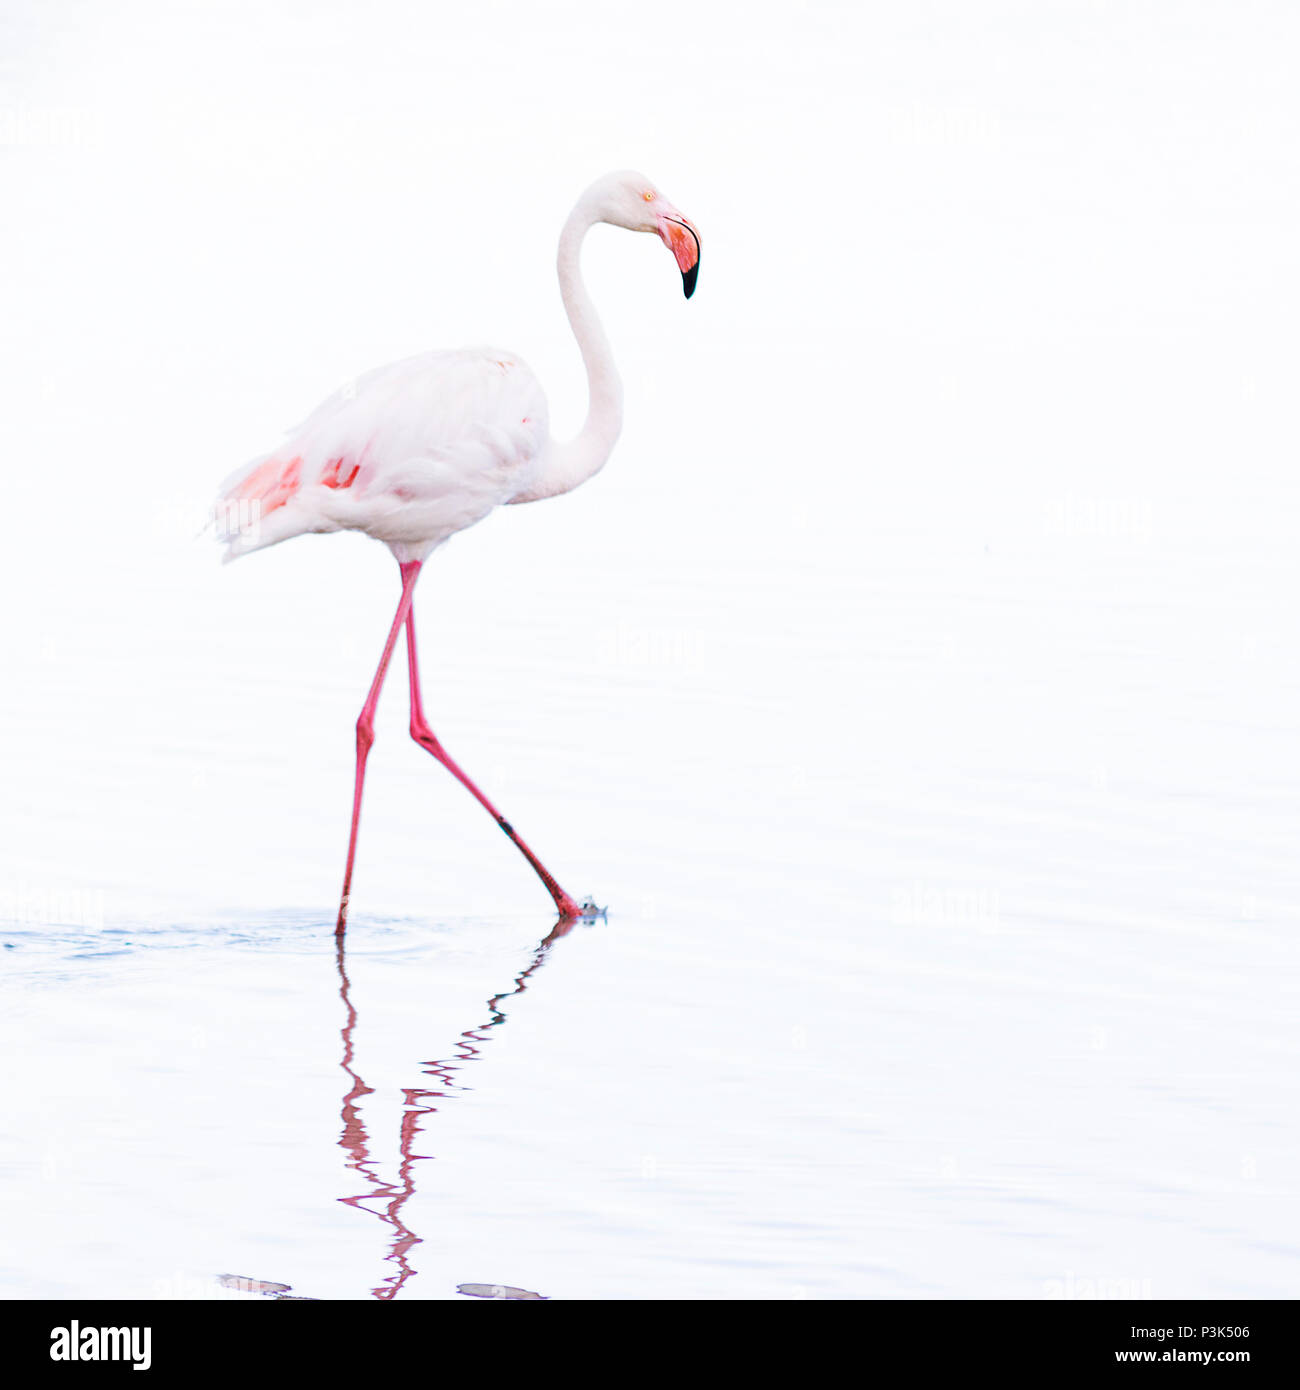 Elegant wading flamingo bird, high key, with its long leggs reflecting in water - Stock Image